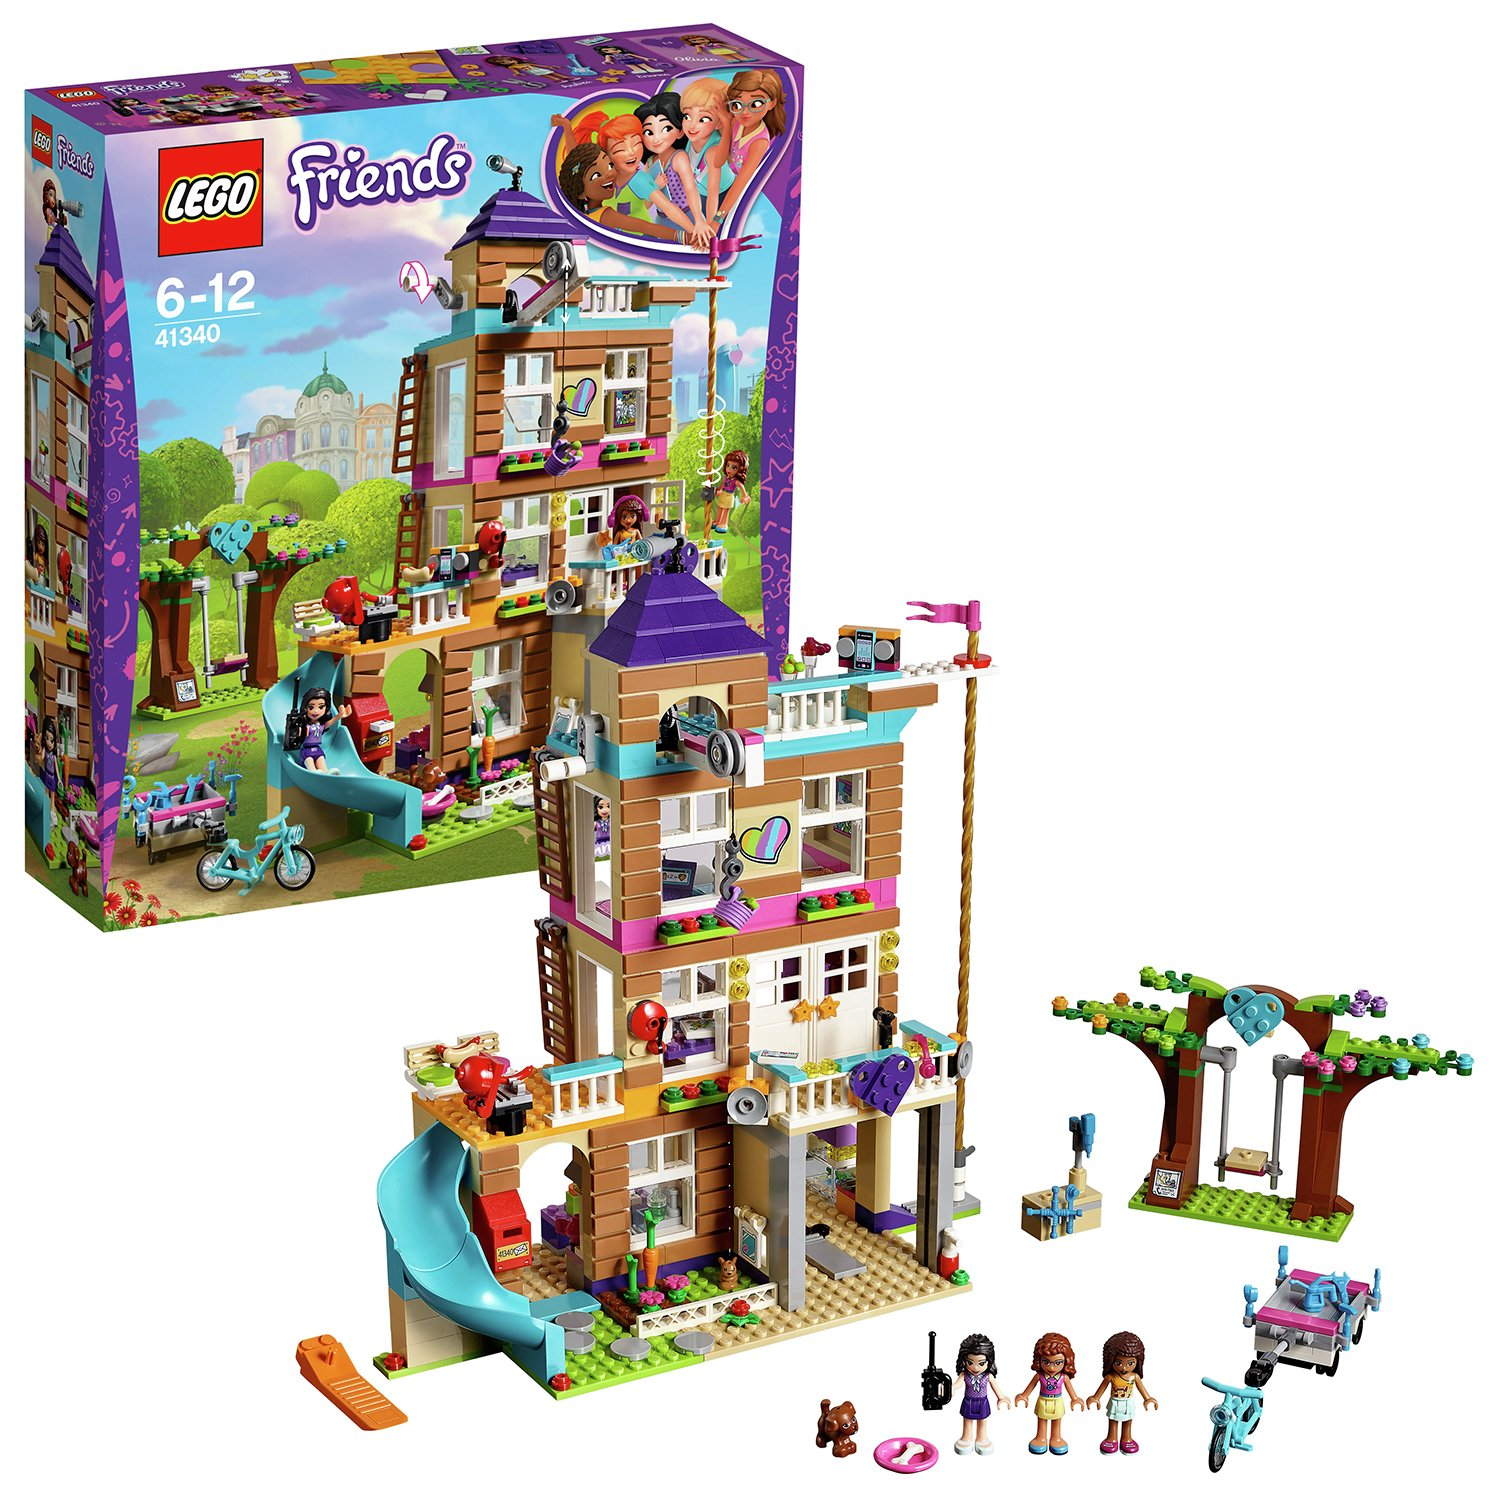 LEGO Friends Heartlake Friendship House Building Set - 41340